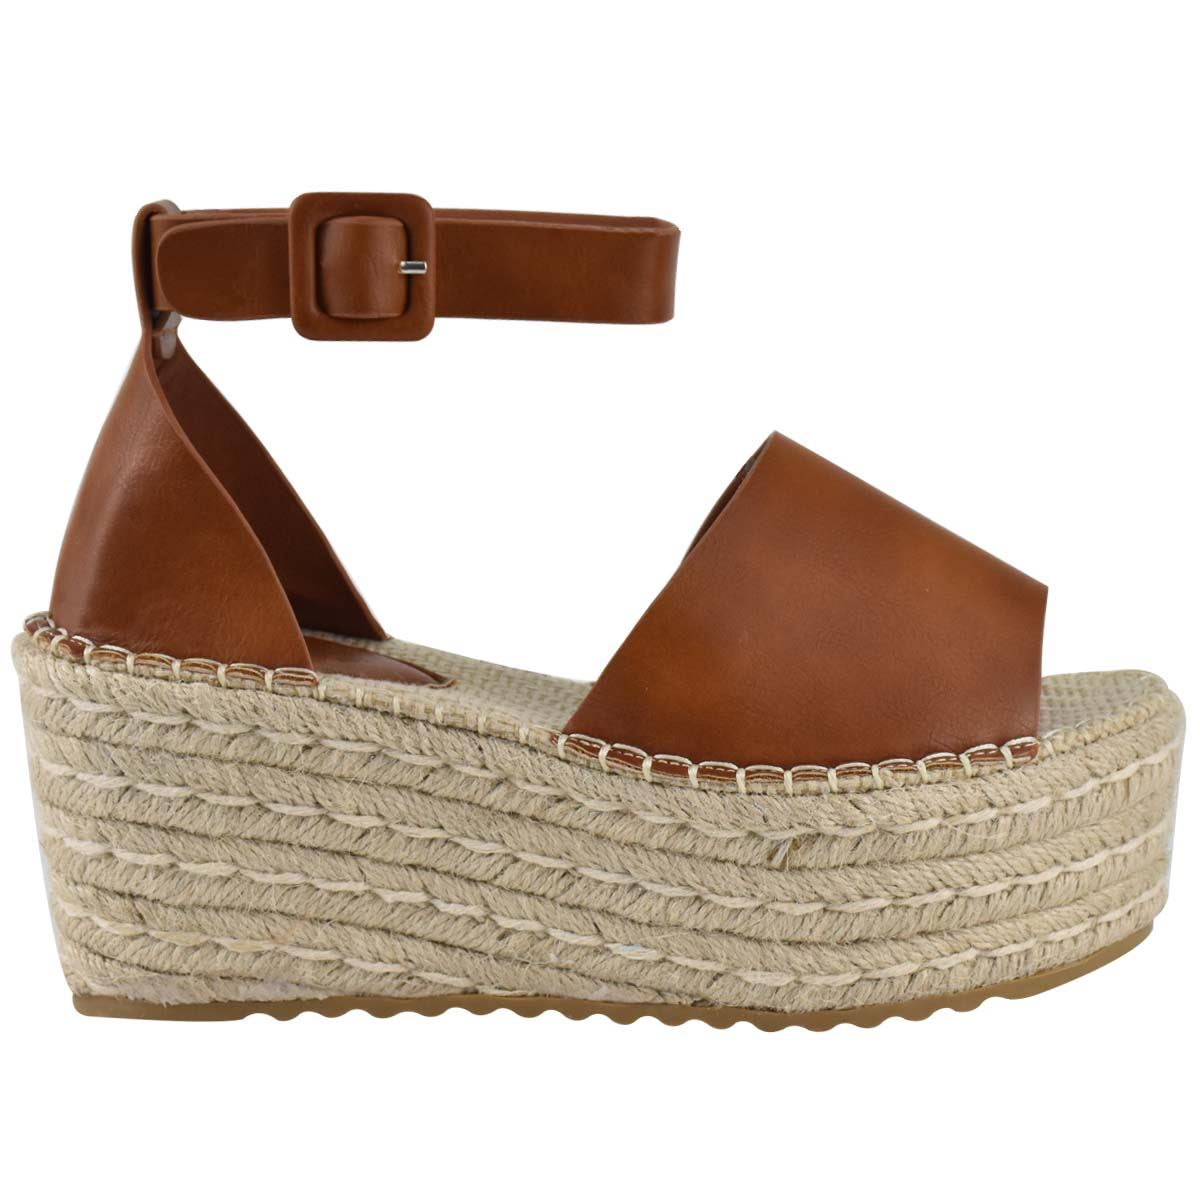 Womens-Flatform-Platform-High-Wedge-Black-Tan-Faux-Leather-Summer-Sandals-Size thumbnail 9